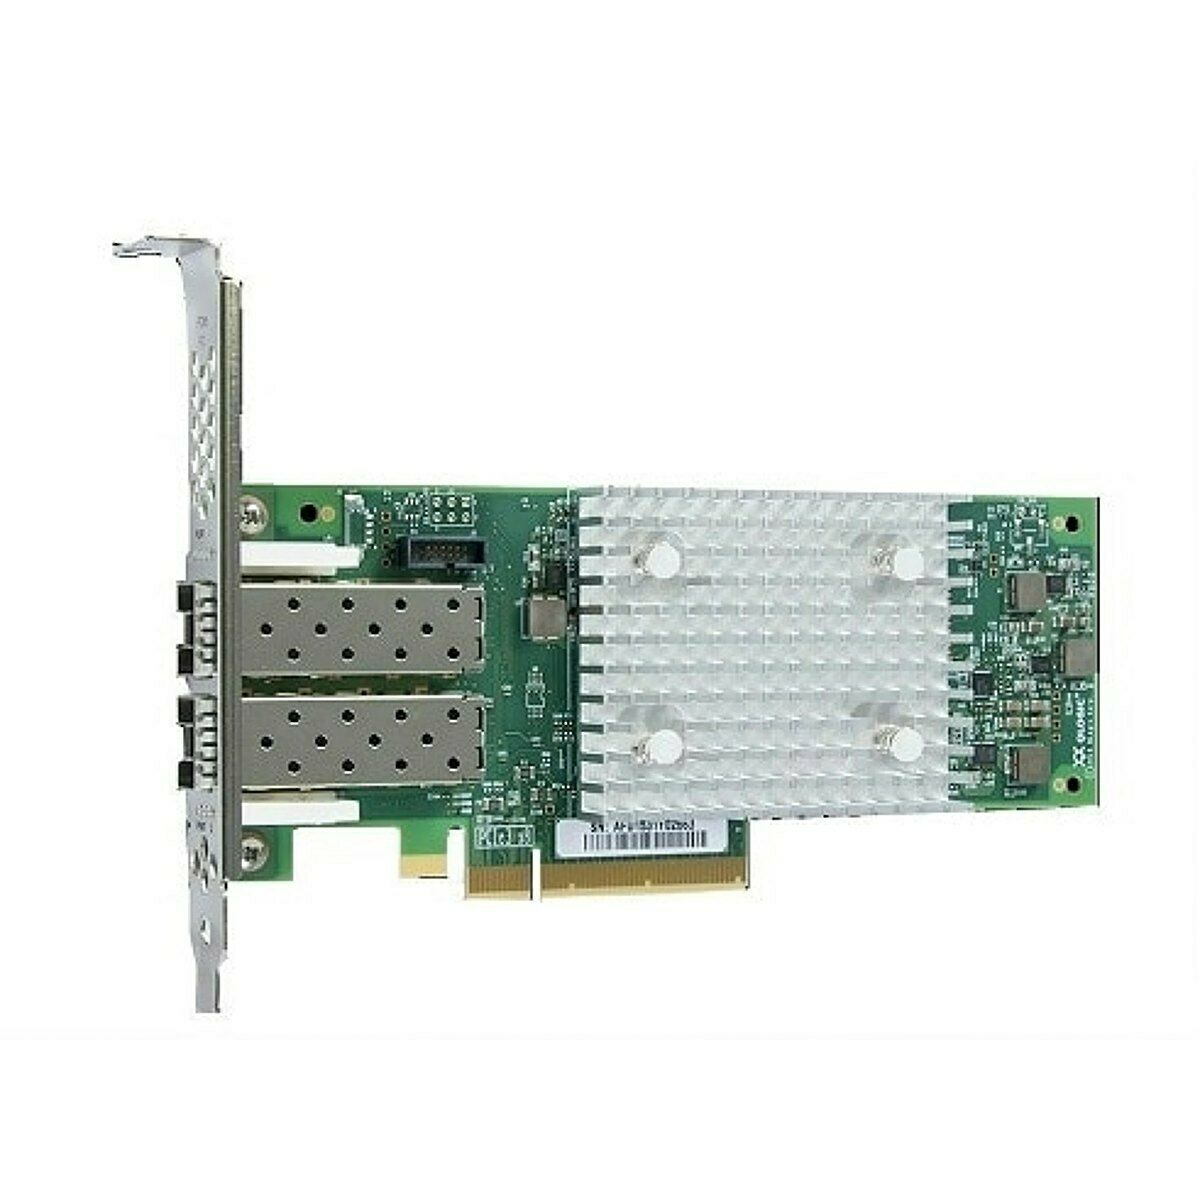 Dell 403-BBMQ Qlogic 2692 Dual Port 16Gb Fibre Channel HBA - Manufacturer Recertified